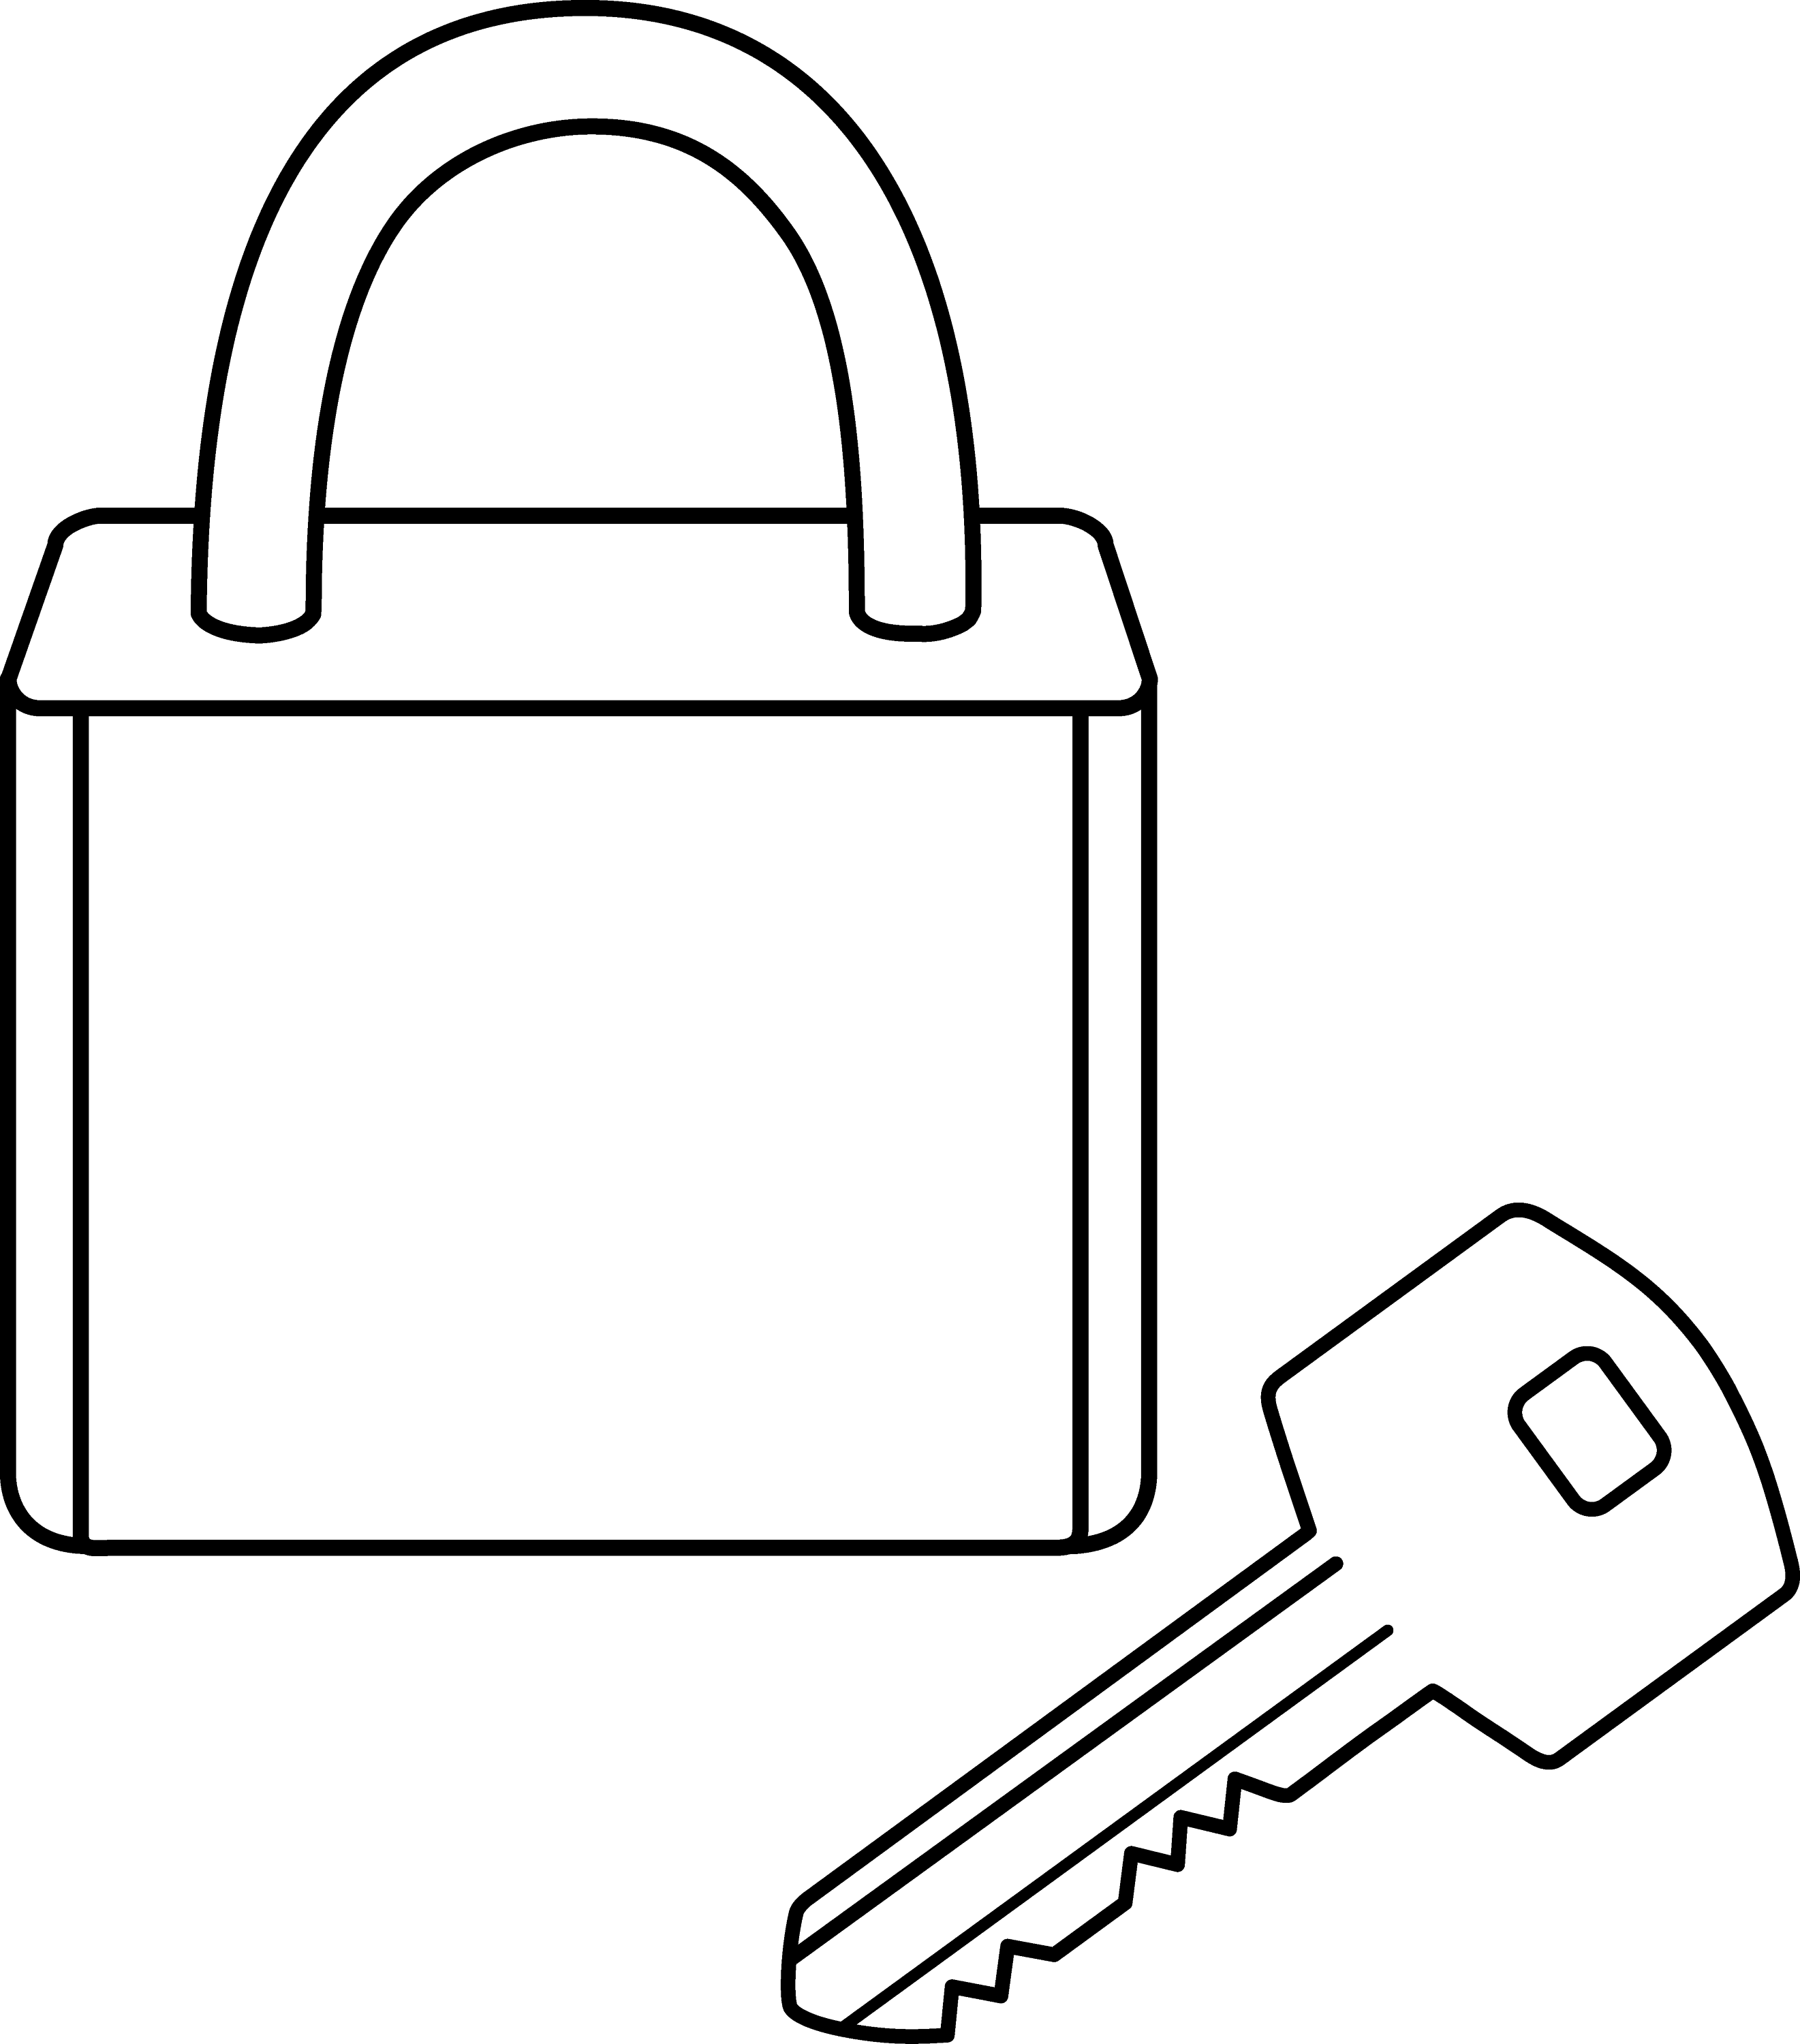 Line Drawing Key : Lock key clipart pixshark images galleries